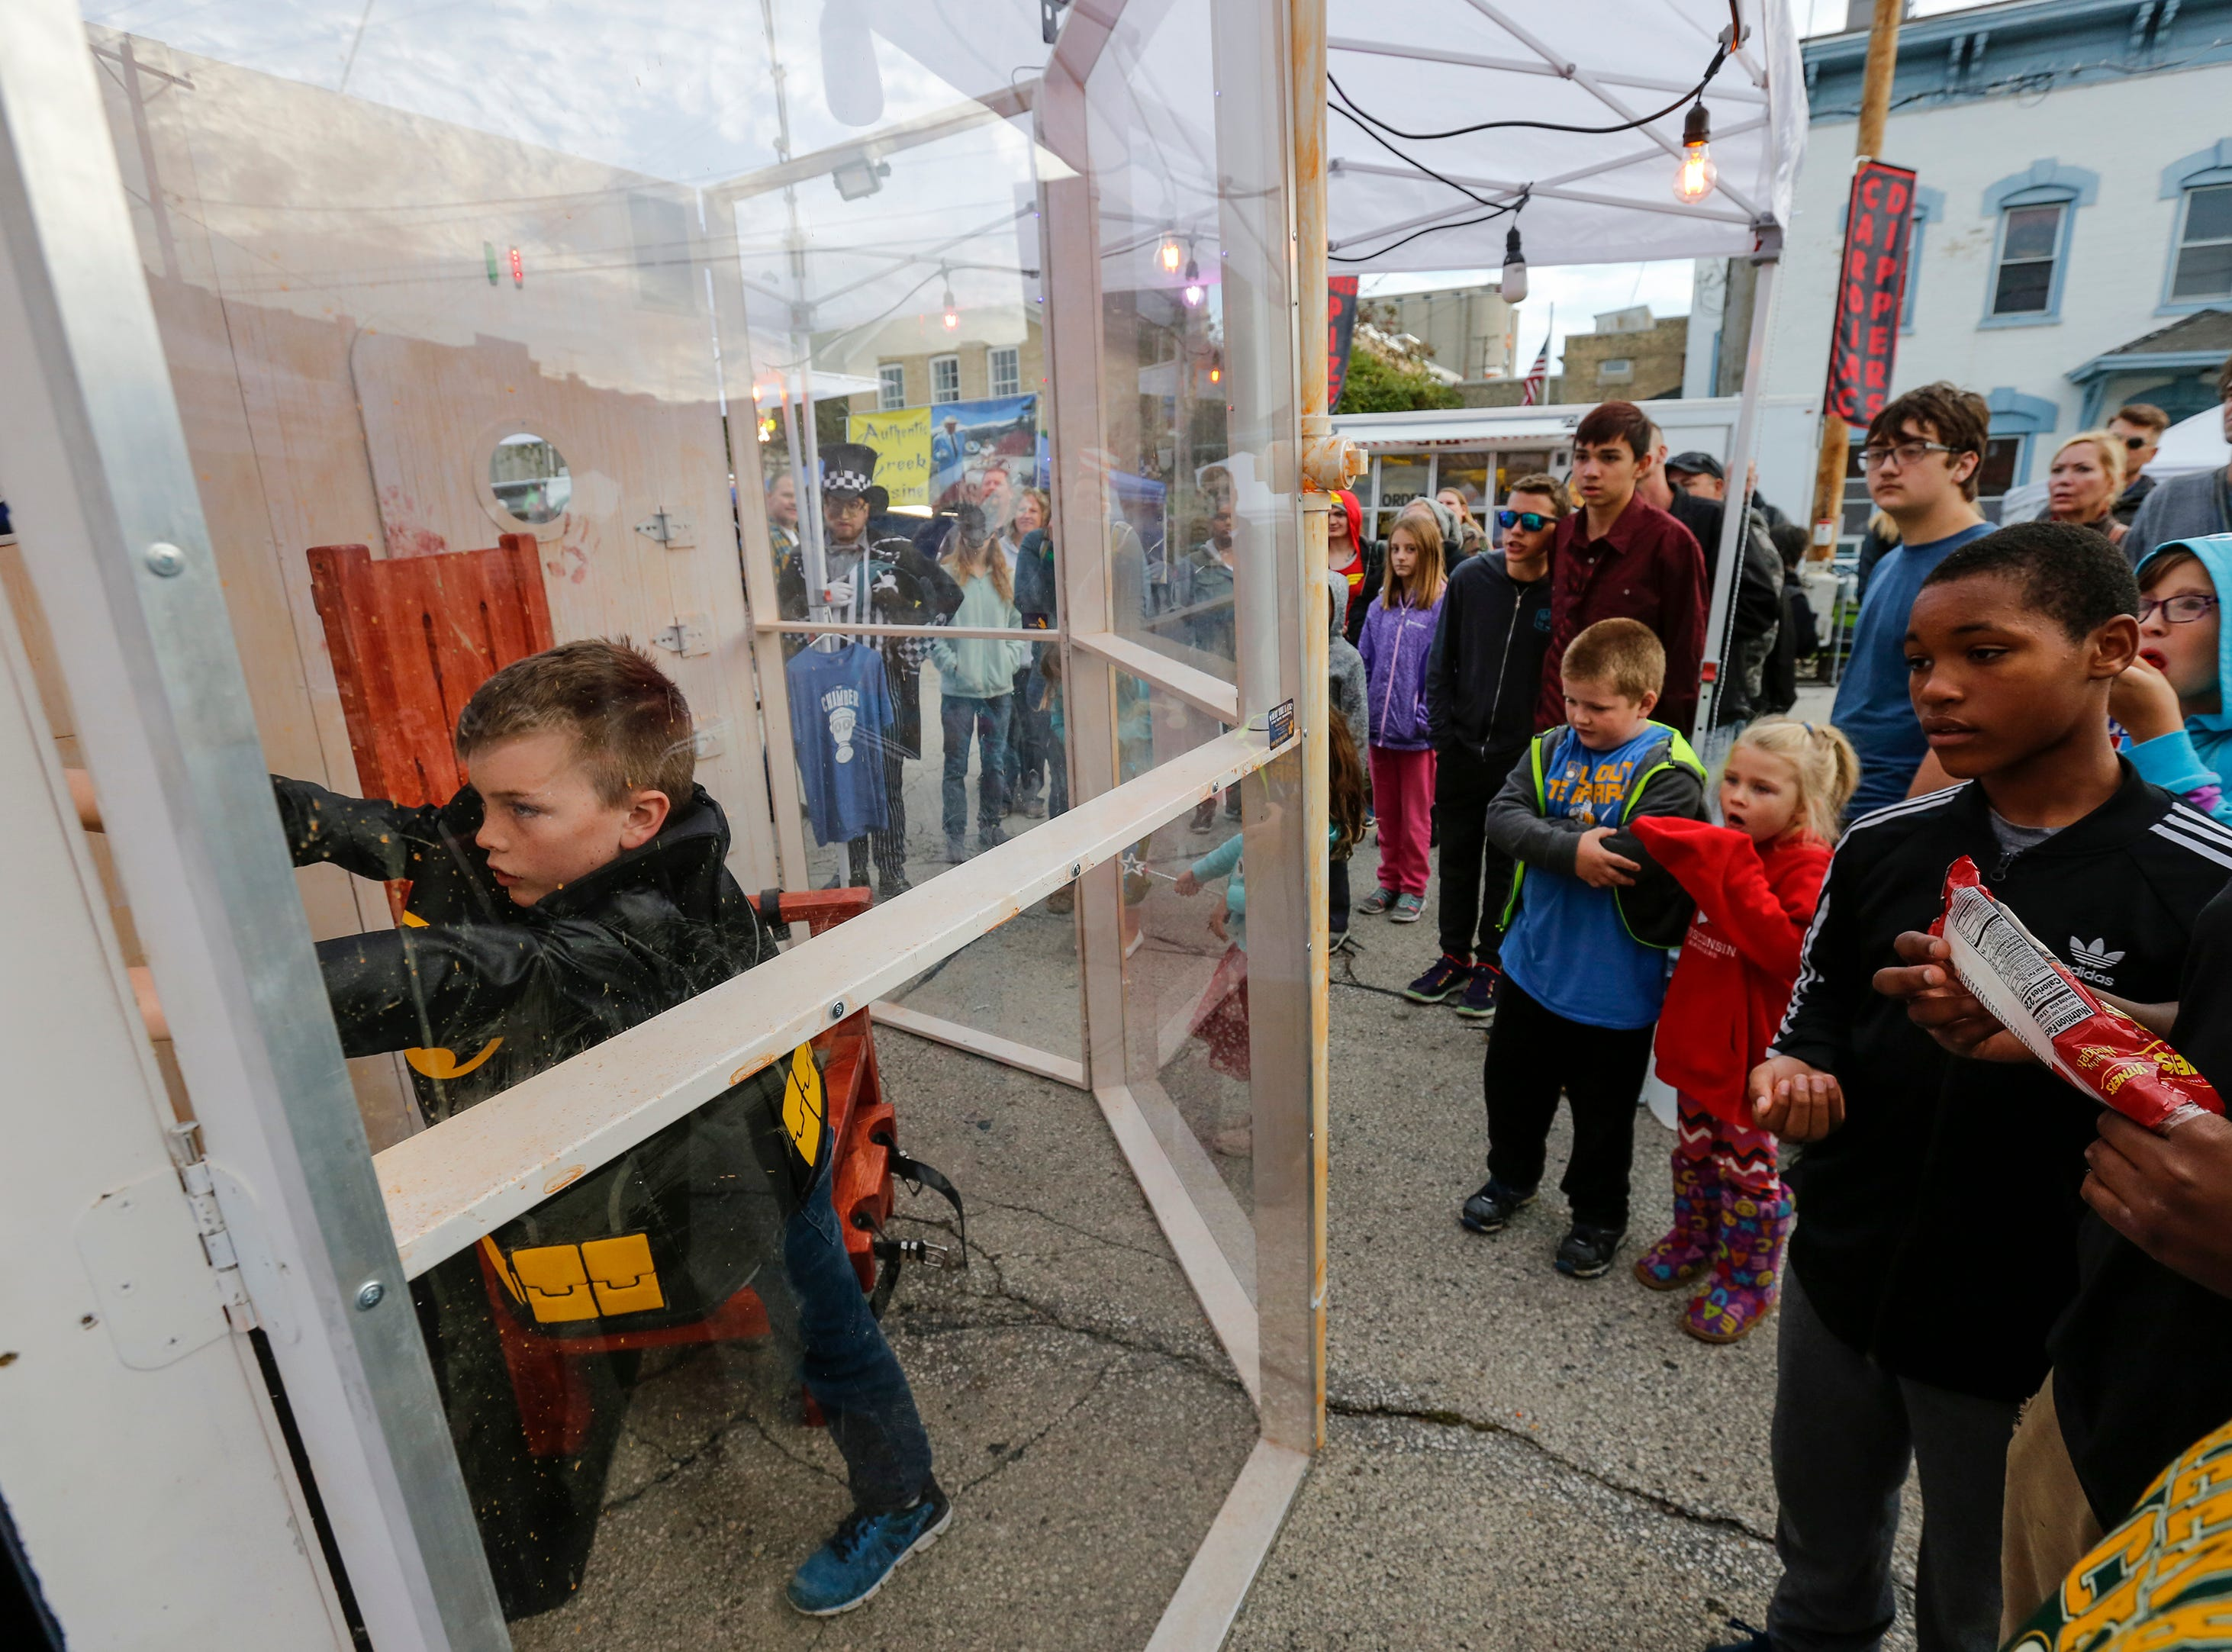 Landon Brice, 10, of Manitowoc tries to get out of a portable escape room built by What the Lock? as people cheer him on during Windigo Fest on Saturday, Oct. 6, 2018, in Manitowoc, Wis.